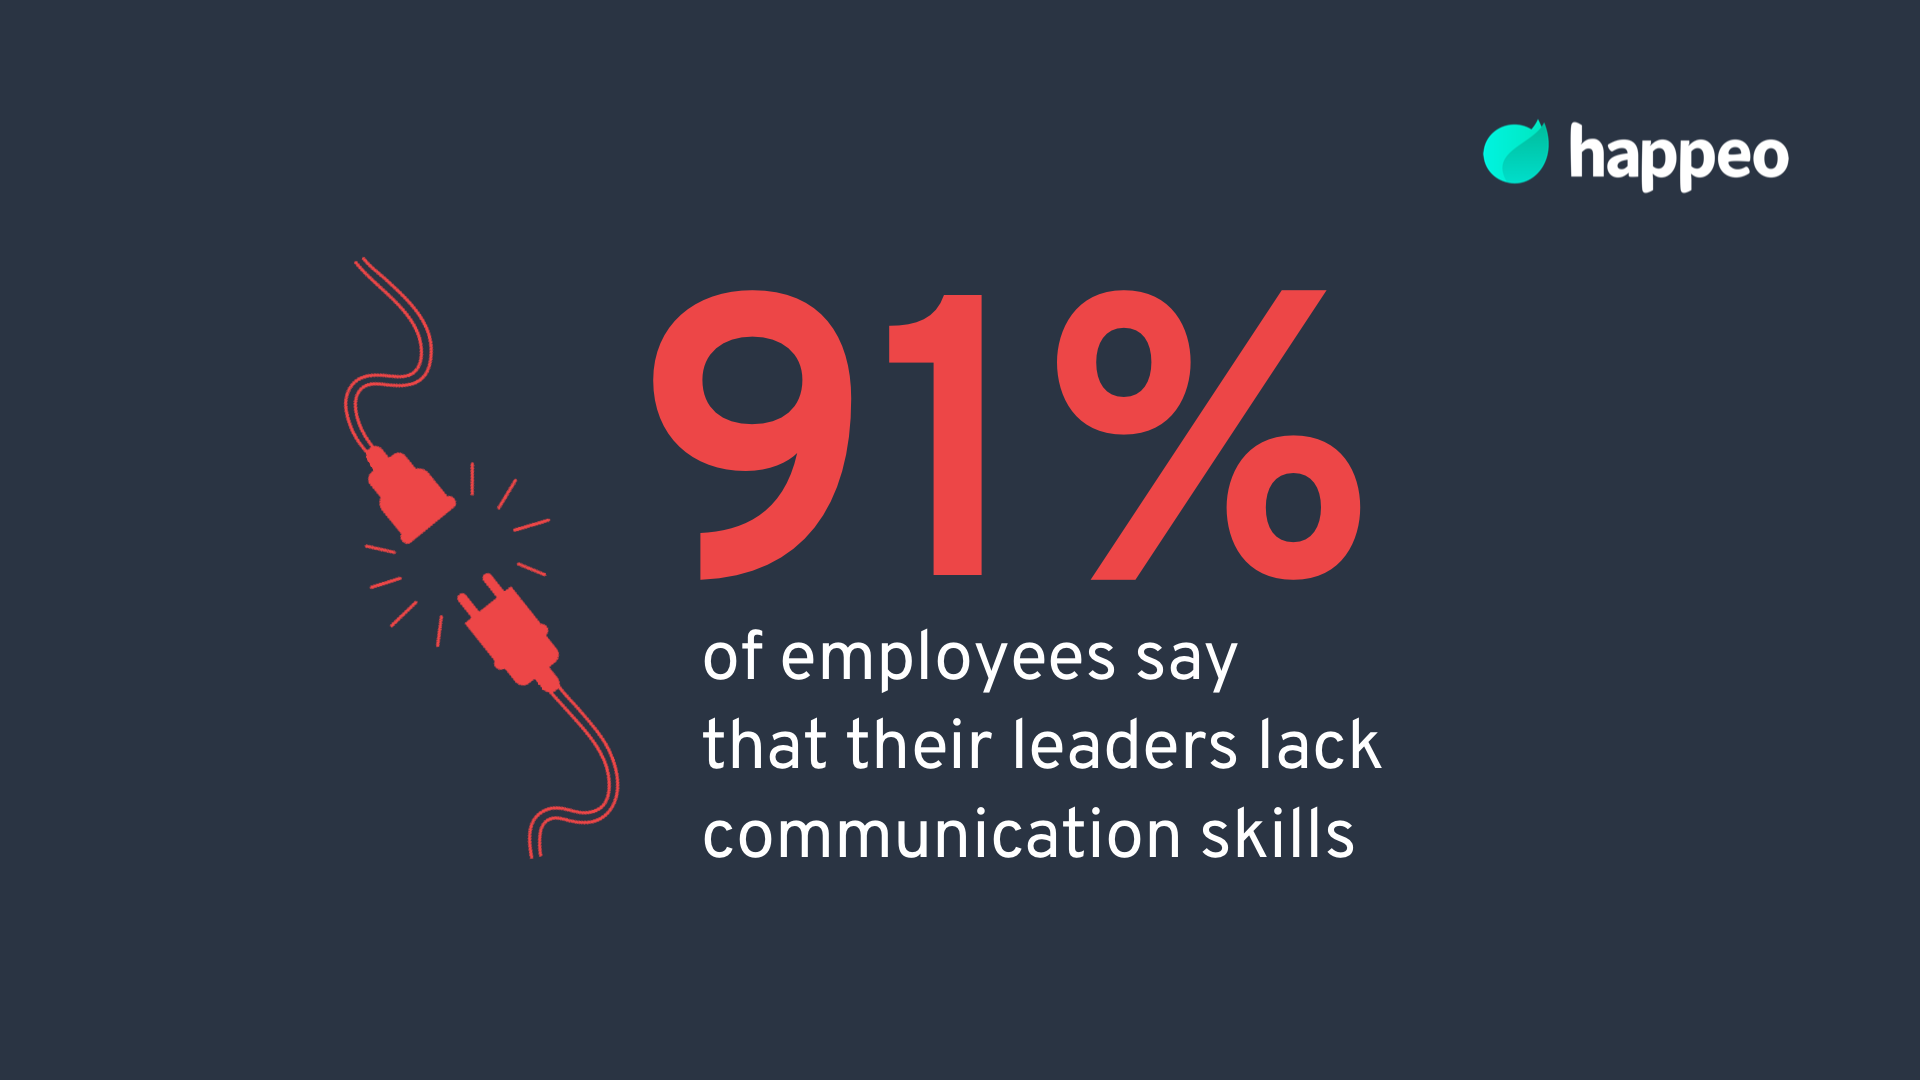 Internal communication - 91% of employees